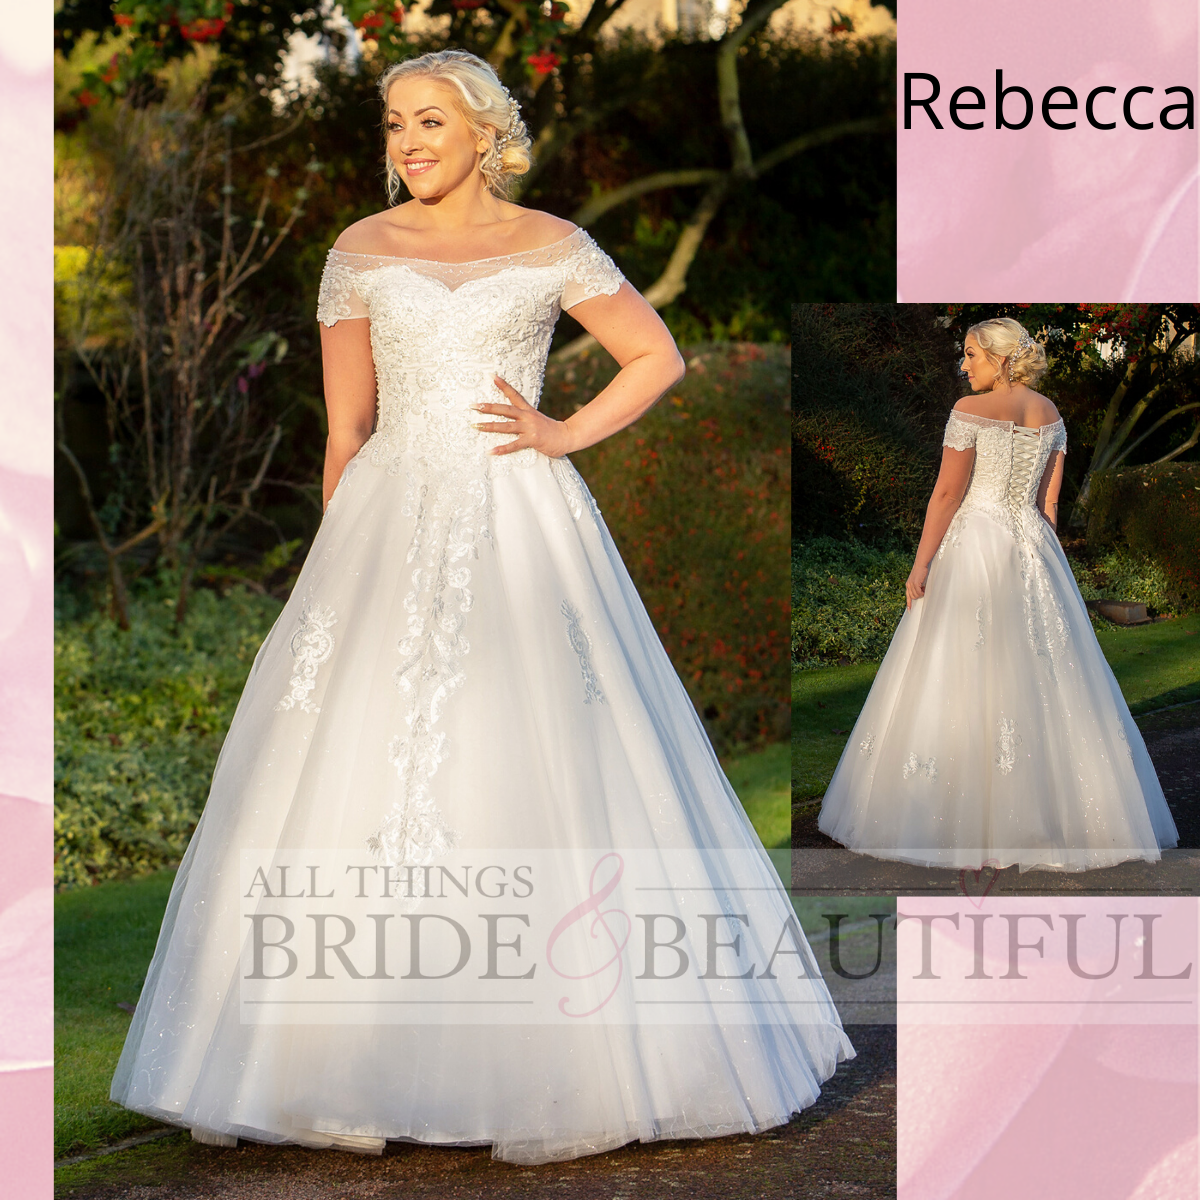 Rebecca, Wedding dress with bardot style neckline and a tulle and lace skirt.